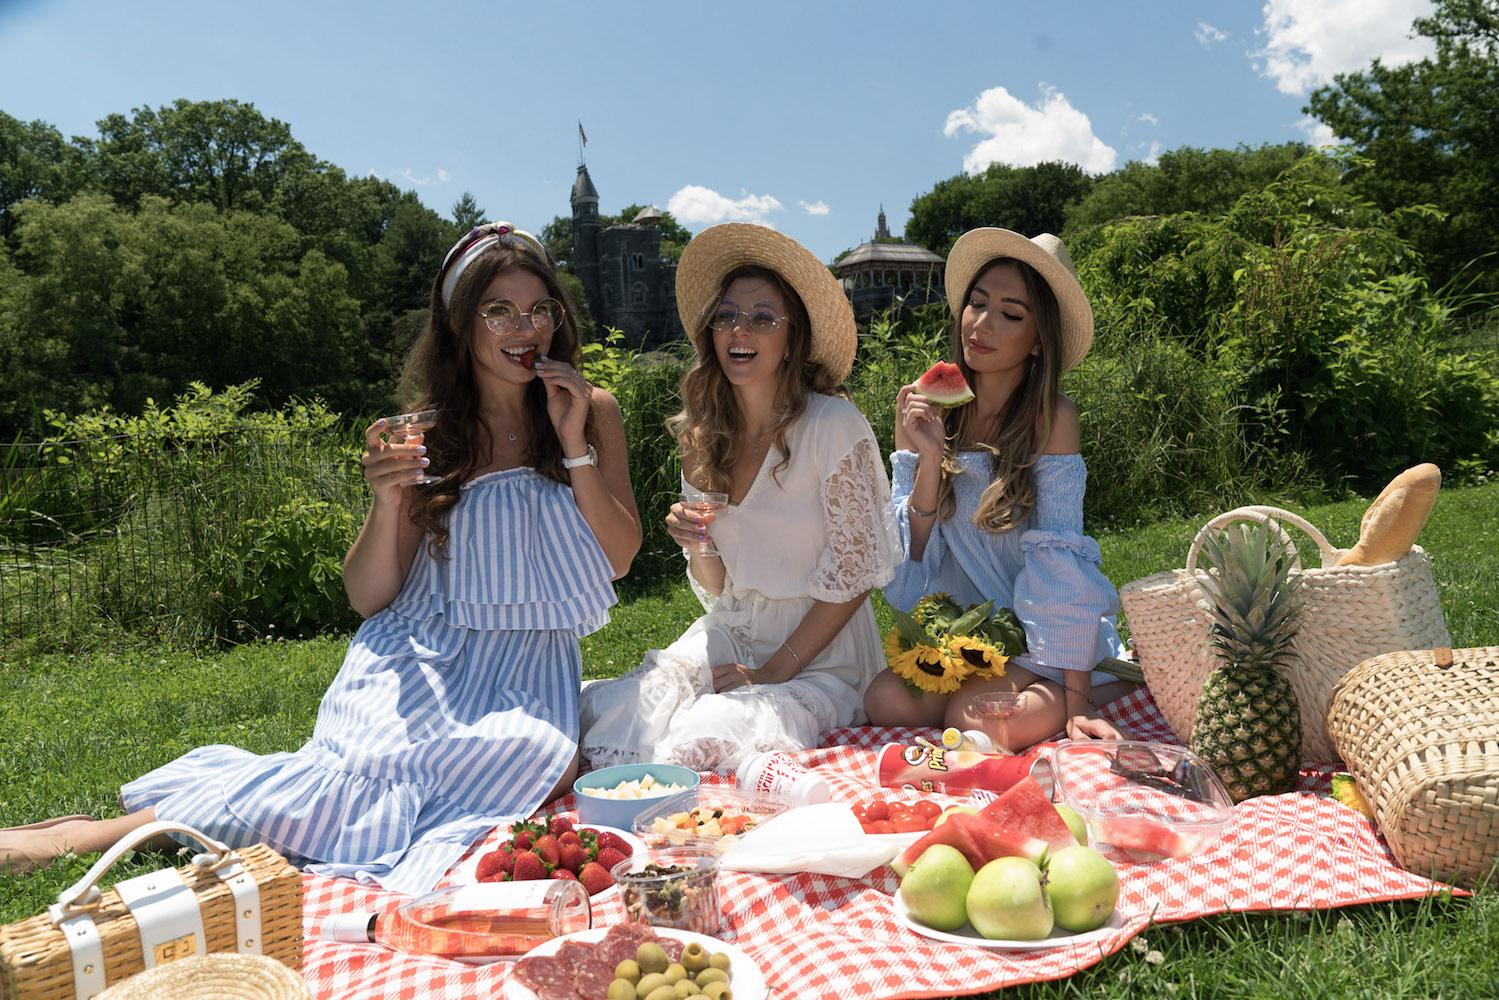 collaboration-sheinside-picnic-central-park.-allbuenothings-shein